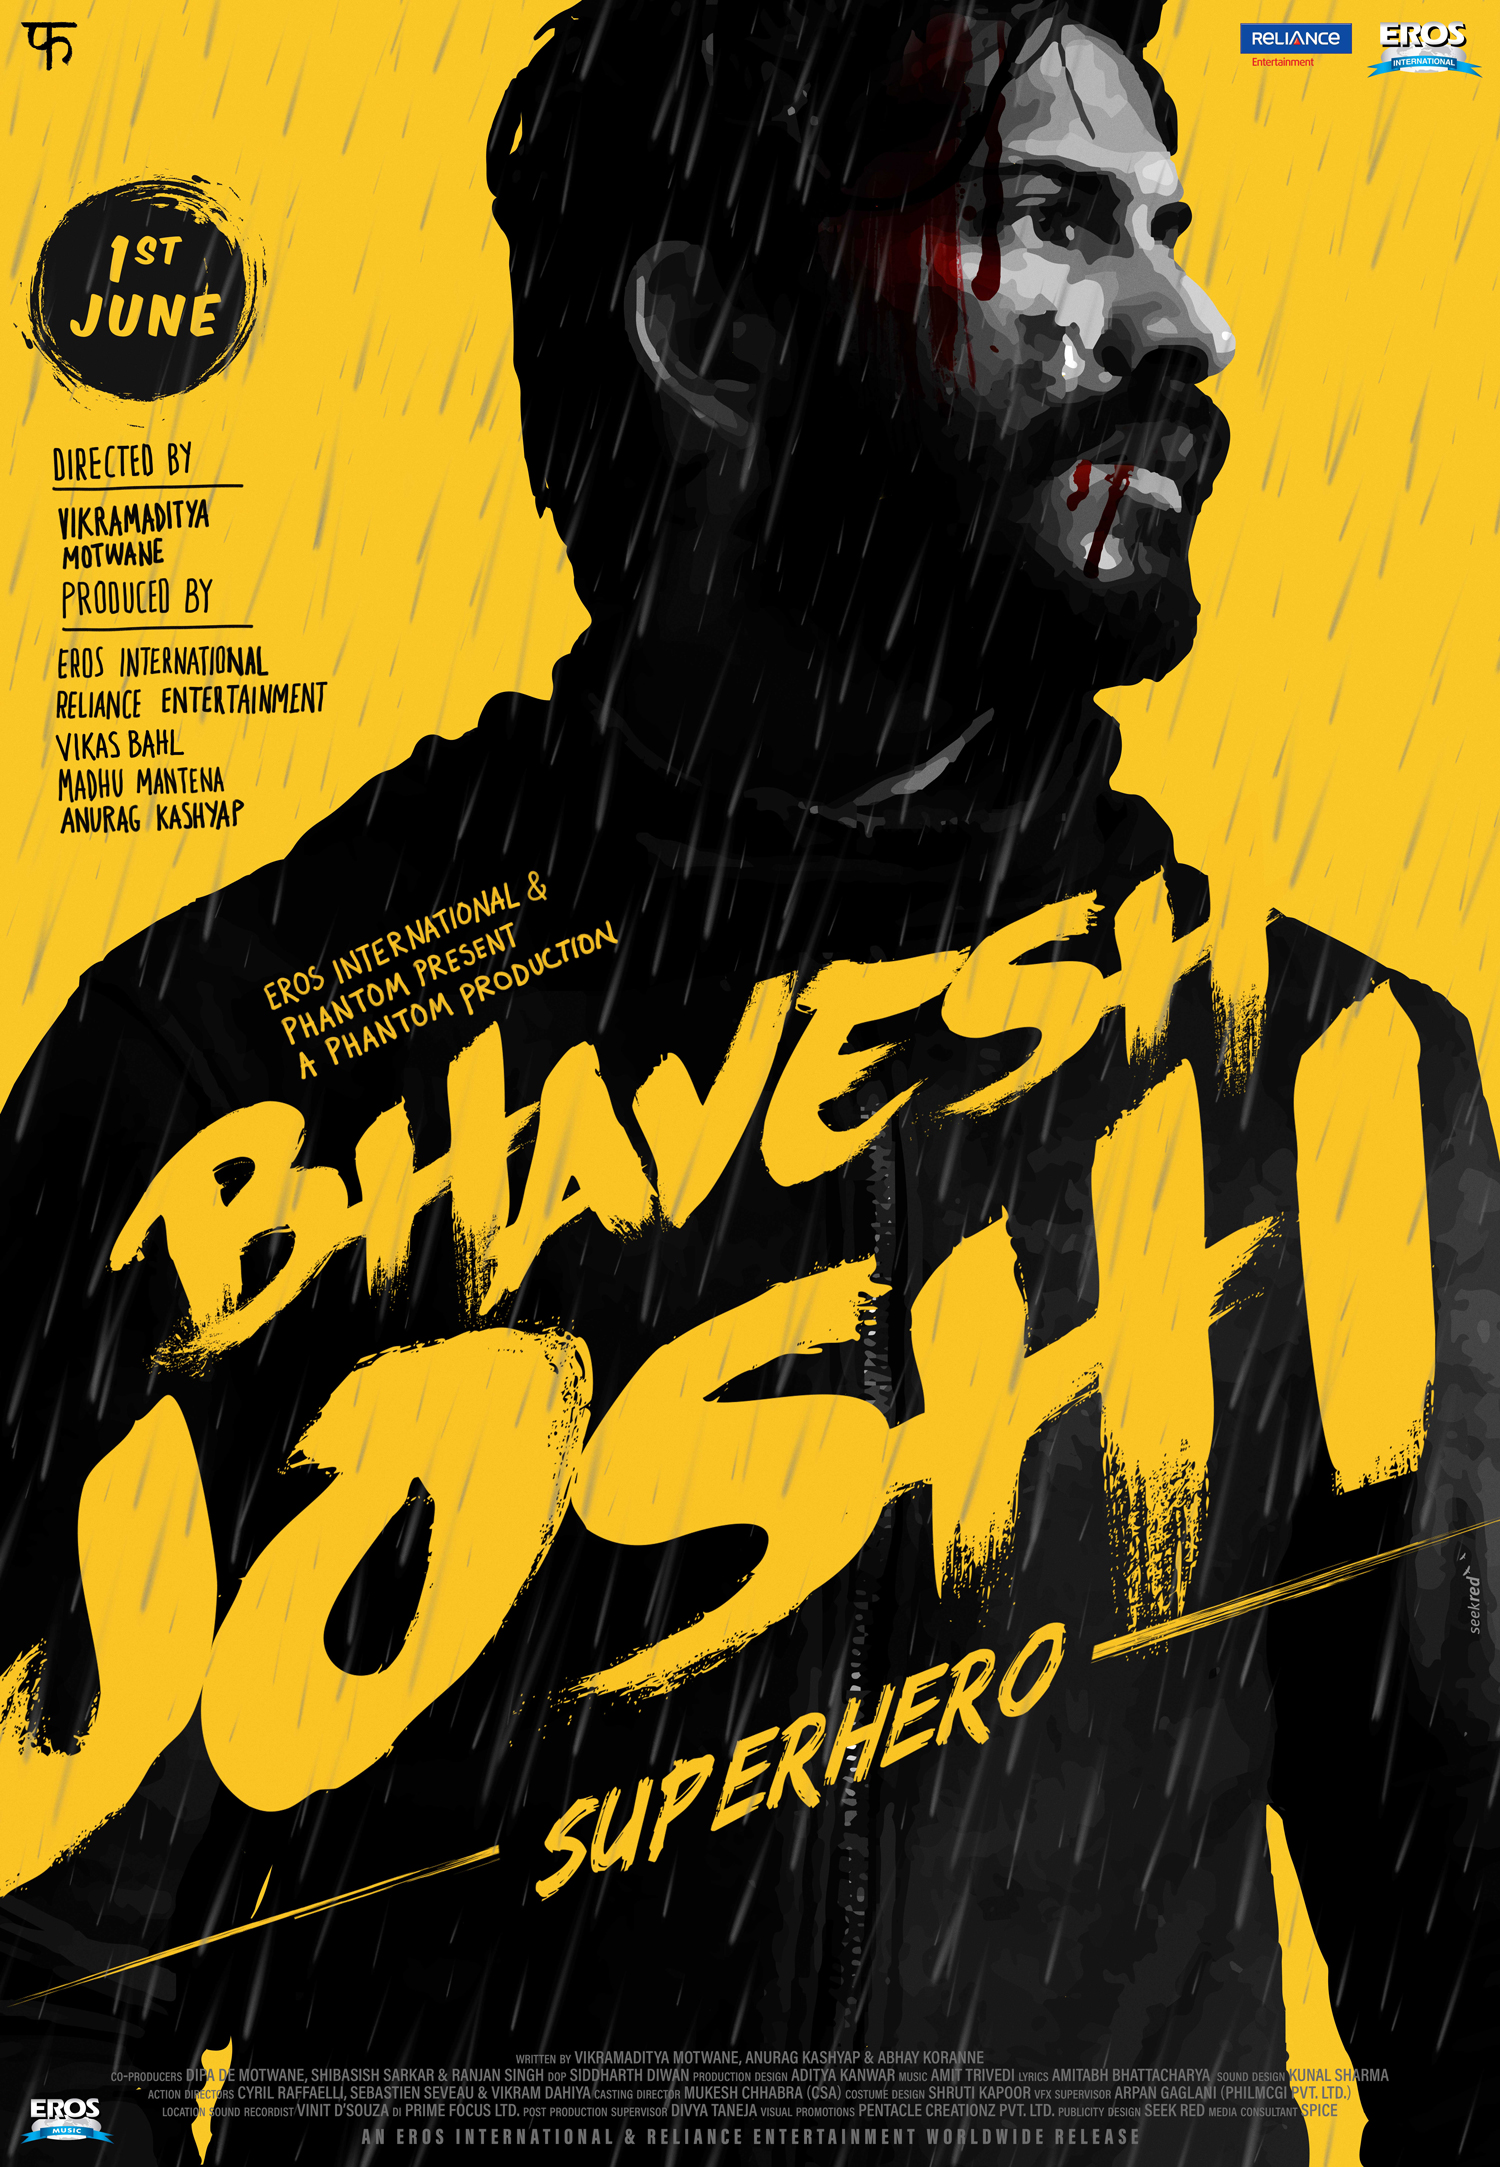 Bhavesh Joshi Superhero - Reveal Yellow poster #SeekRed